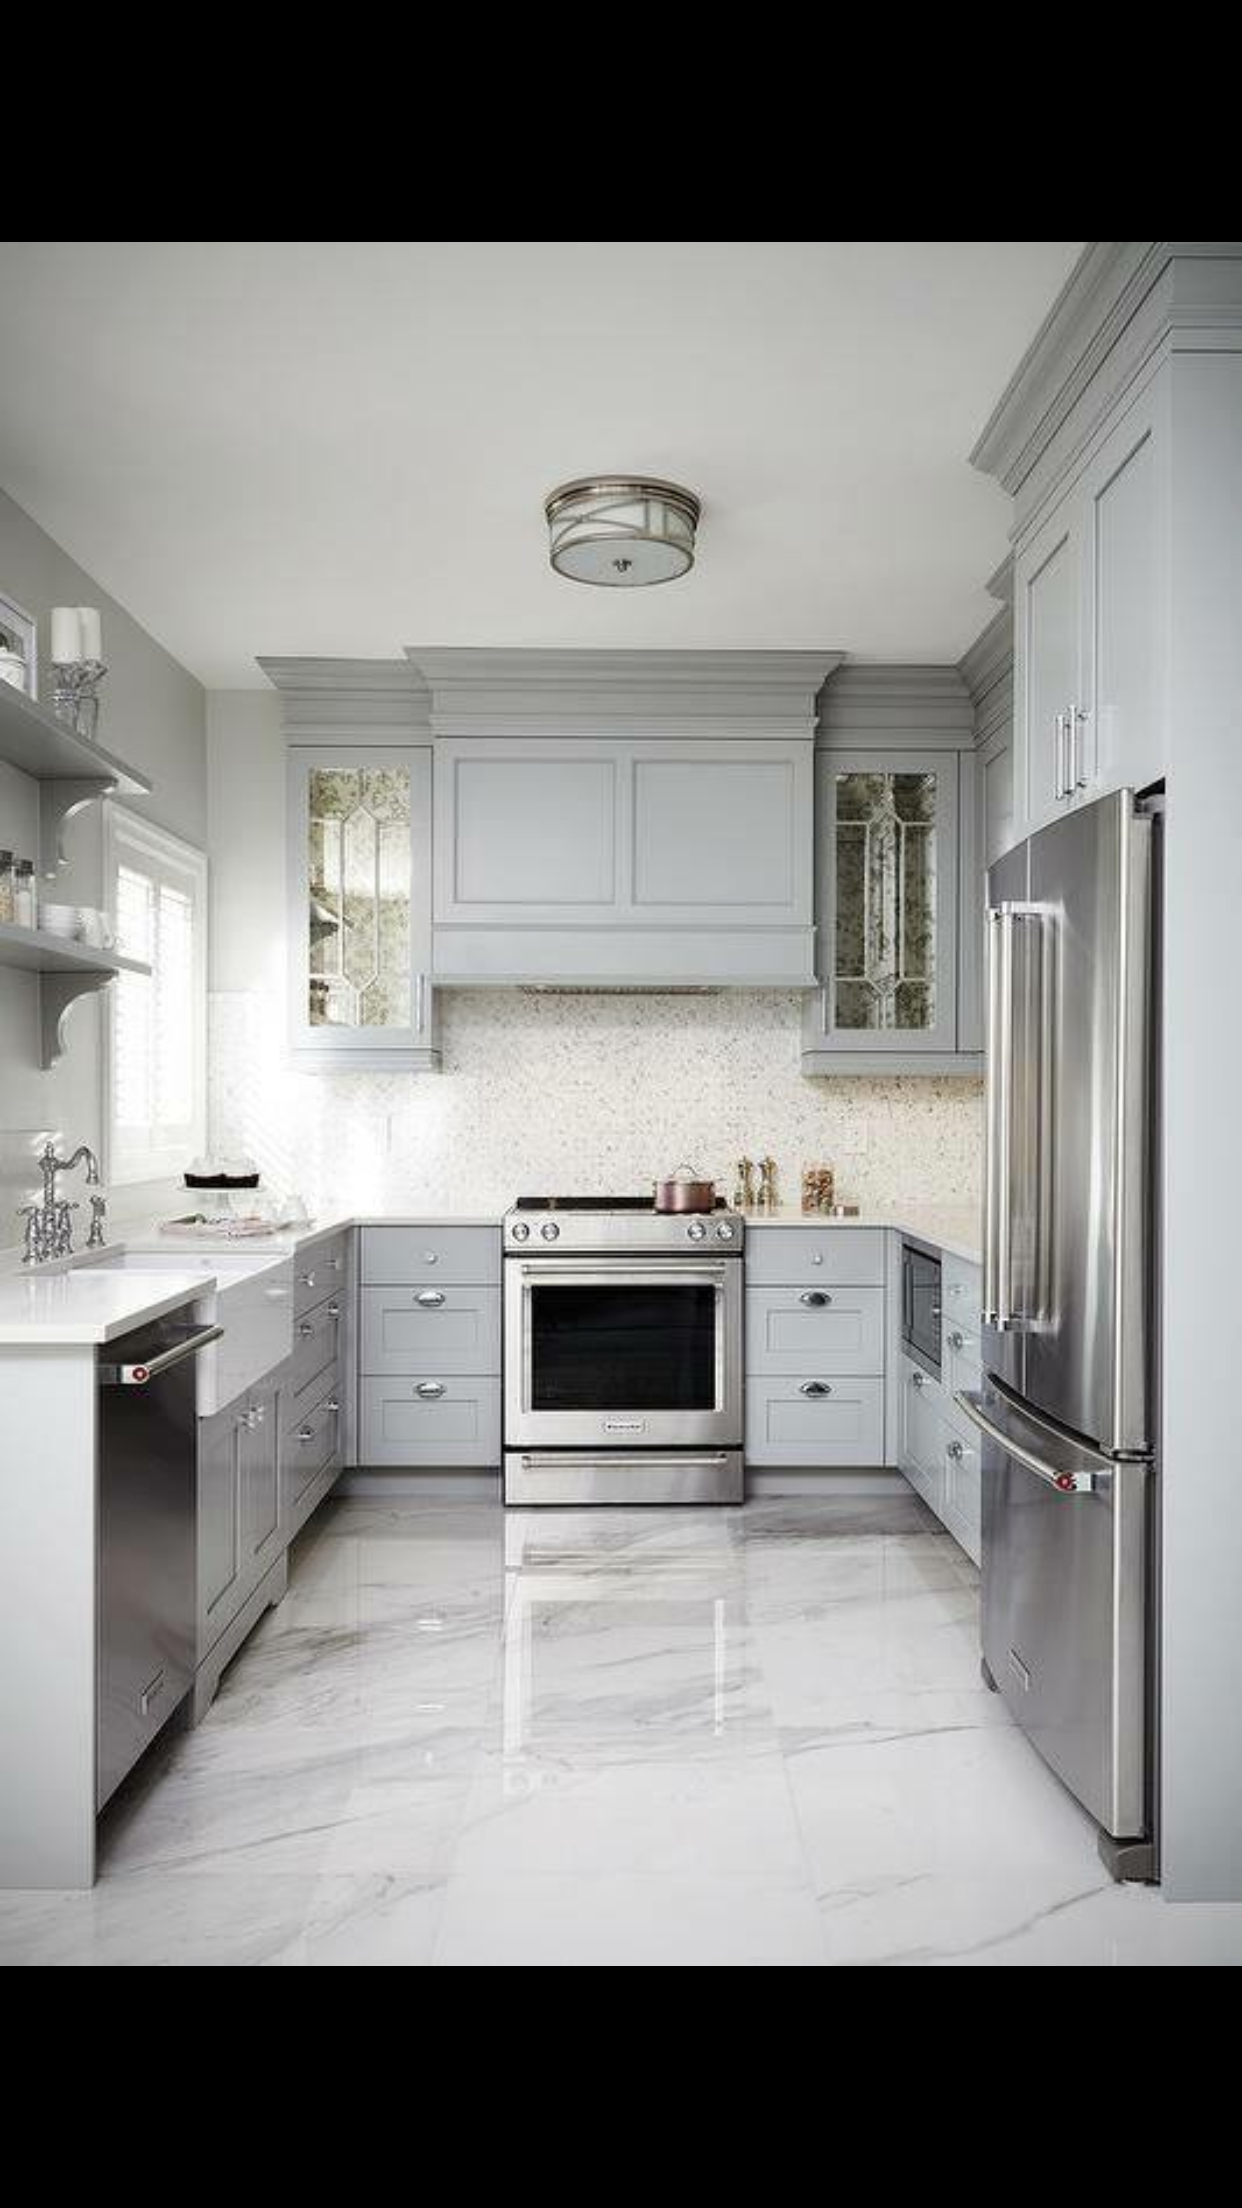 Pin by Jessica Green on For the Home | Pinterest | Kitchens, Kitchen ...